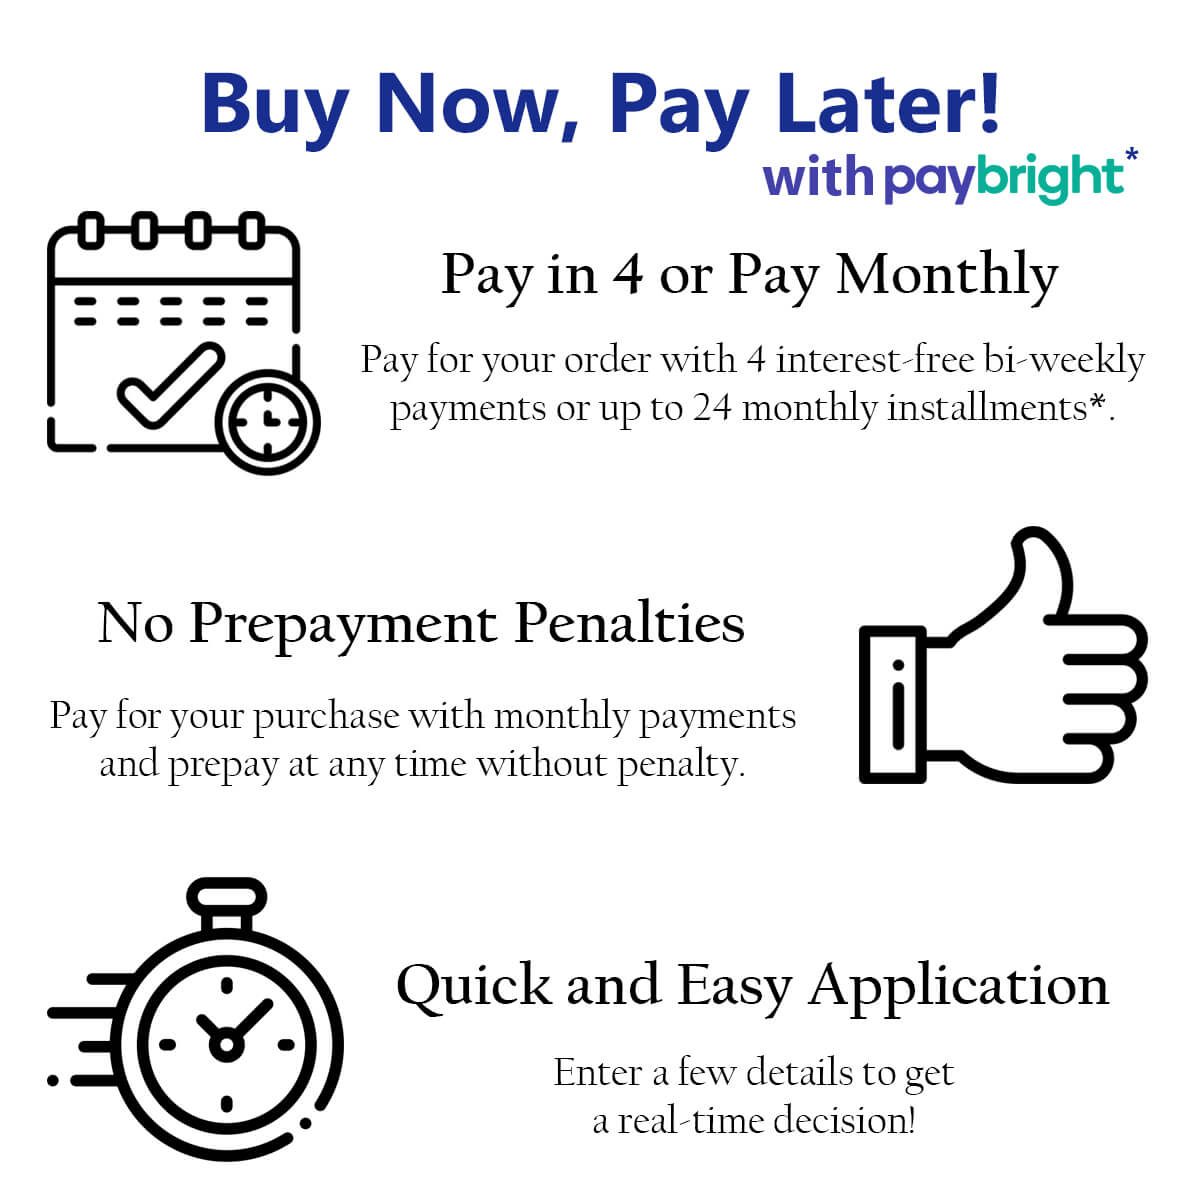 Sirena Paybright Financing - How It Works